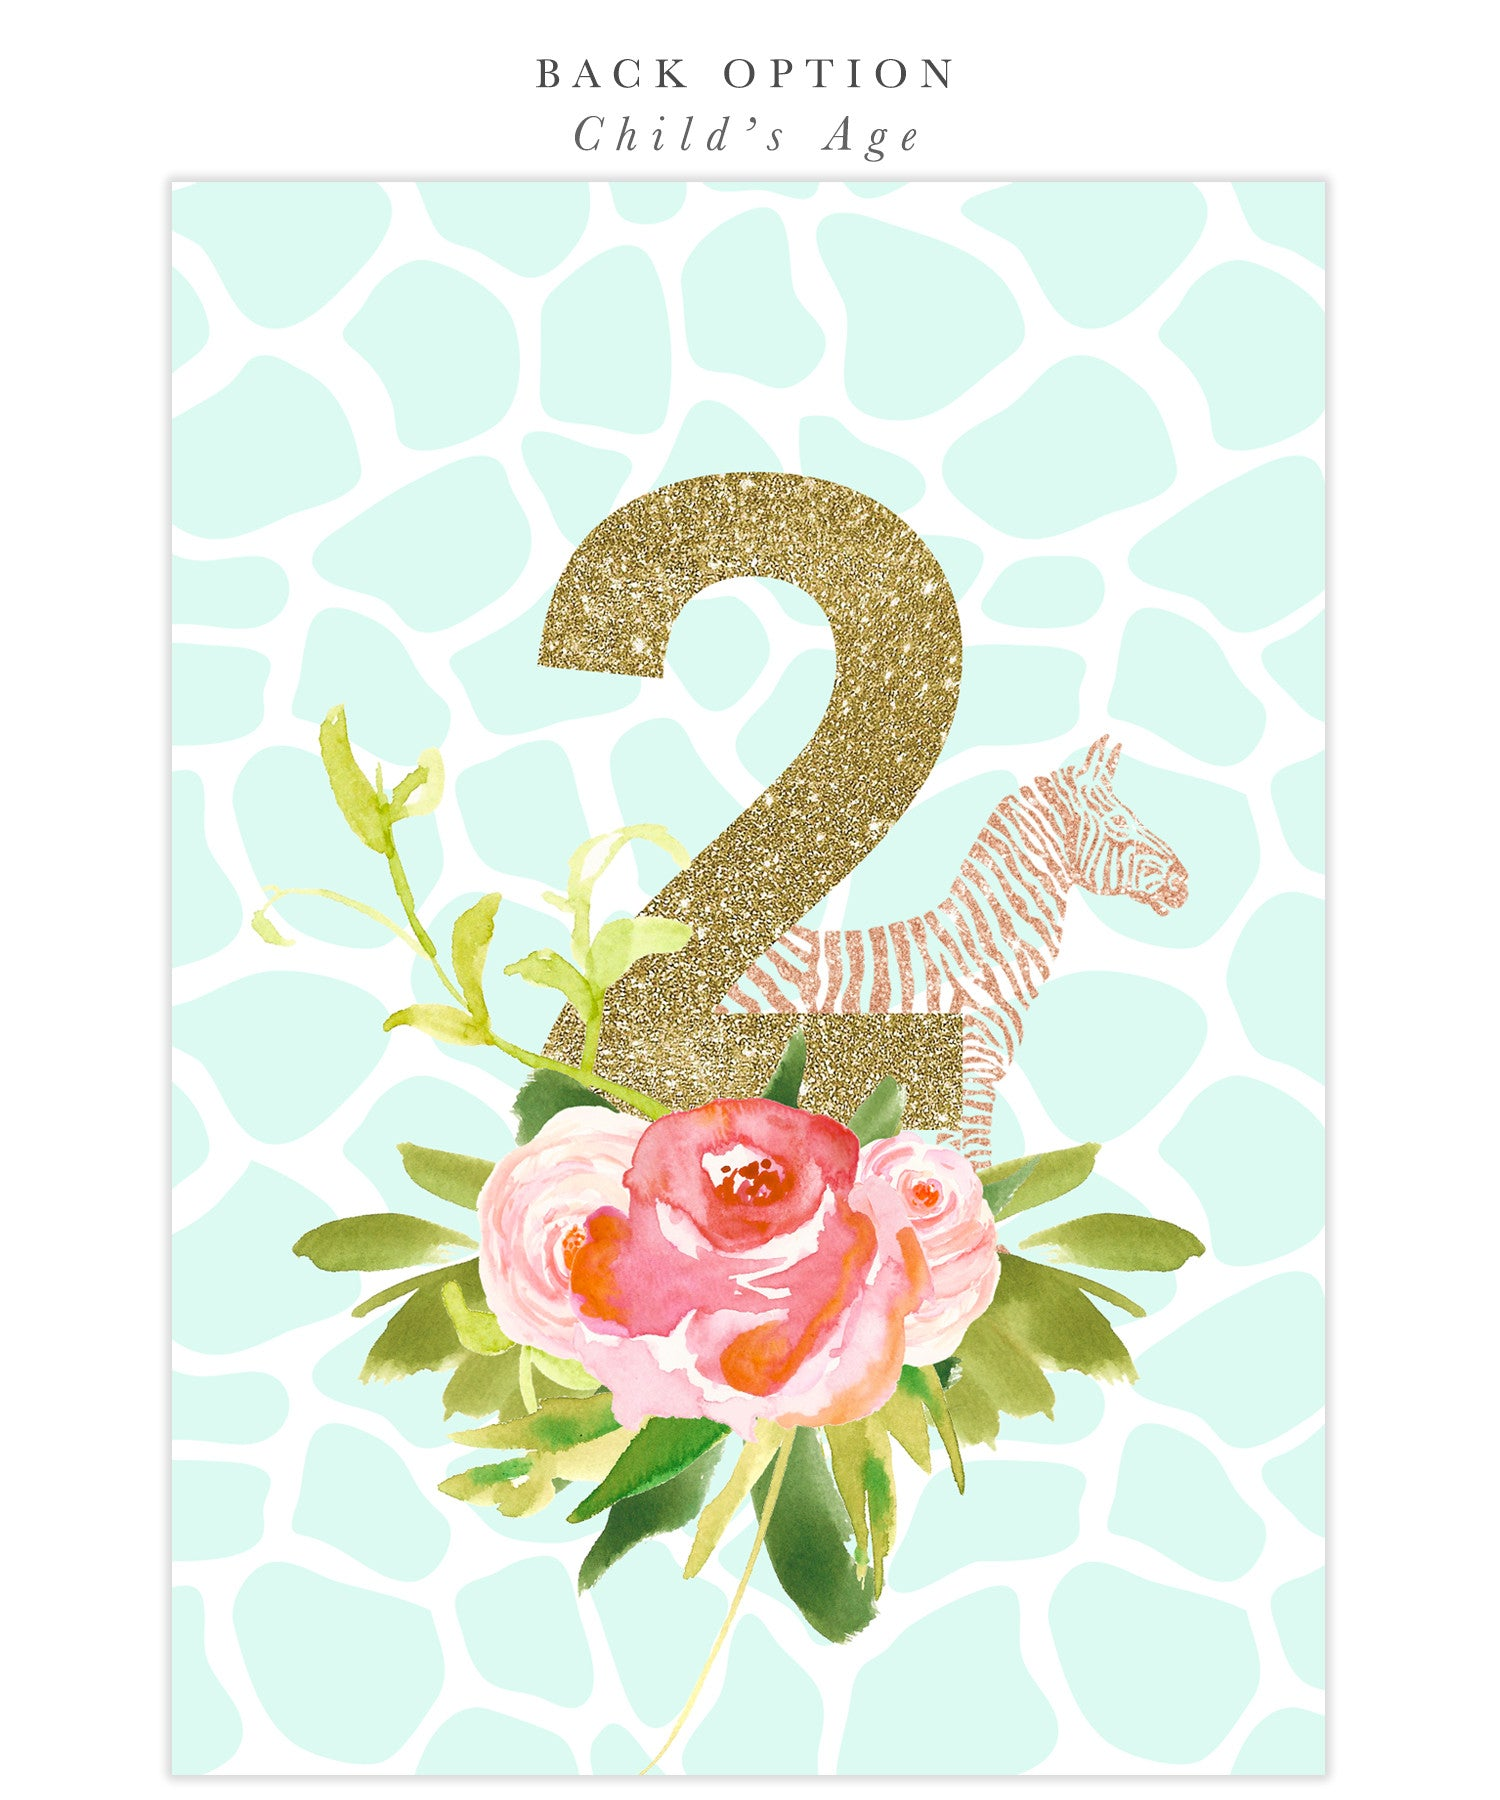 Glam safari jungle girl 2nd birthday invitation second birthday glam safari jungle girl second 2nd birthday invitation tropical flowers giraffe filmwisefo